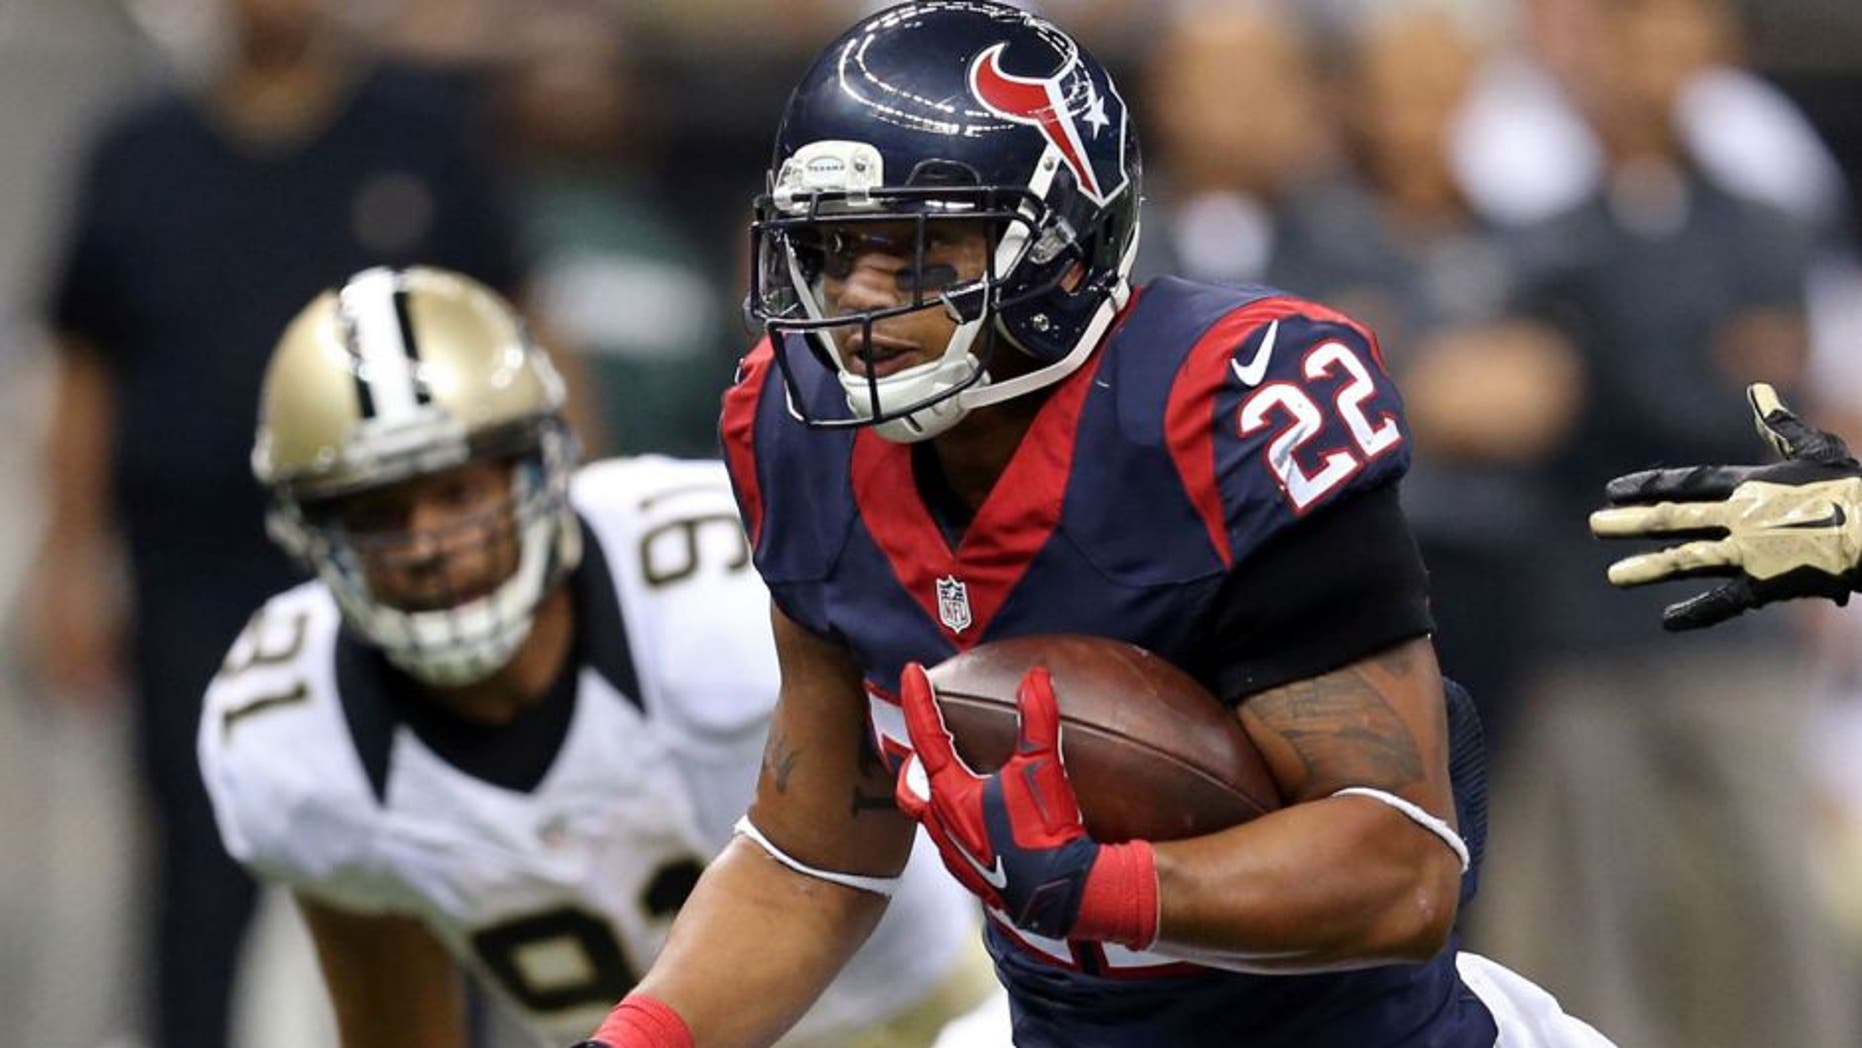 Aug 30, 2015; New Orleans, LA, USA; Houston Texans running back Chris Polk (22) makes a run in the second quarter of their game against the New Orleans Saints at the Mercedes-Benz Superdome. Mandatory Credit: Chuck Cook-USA TODAY Sports